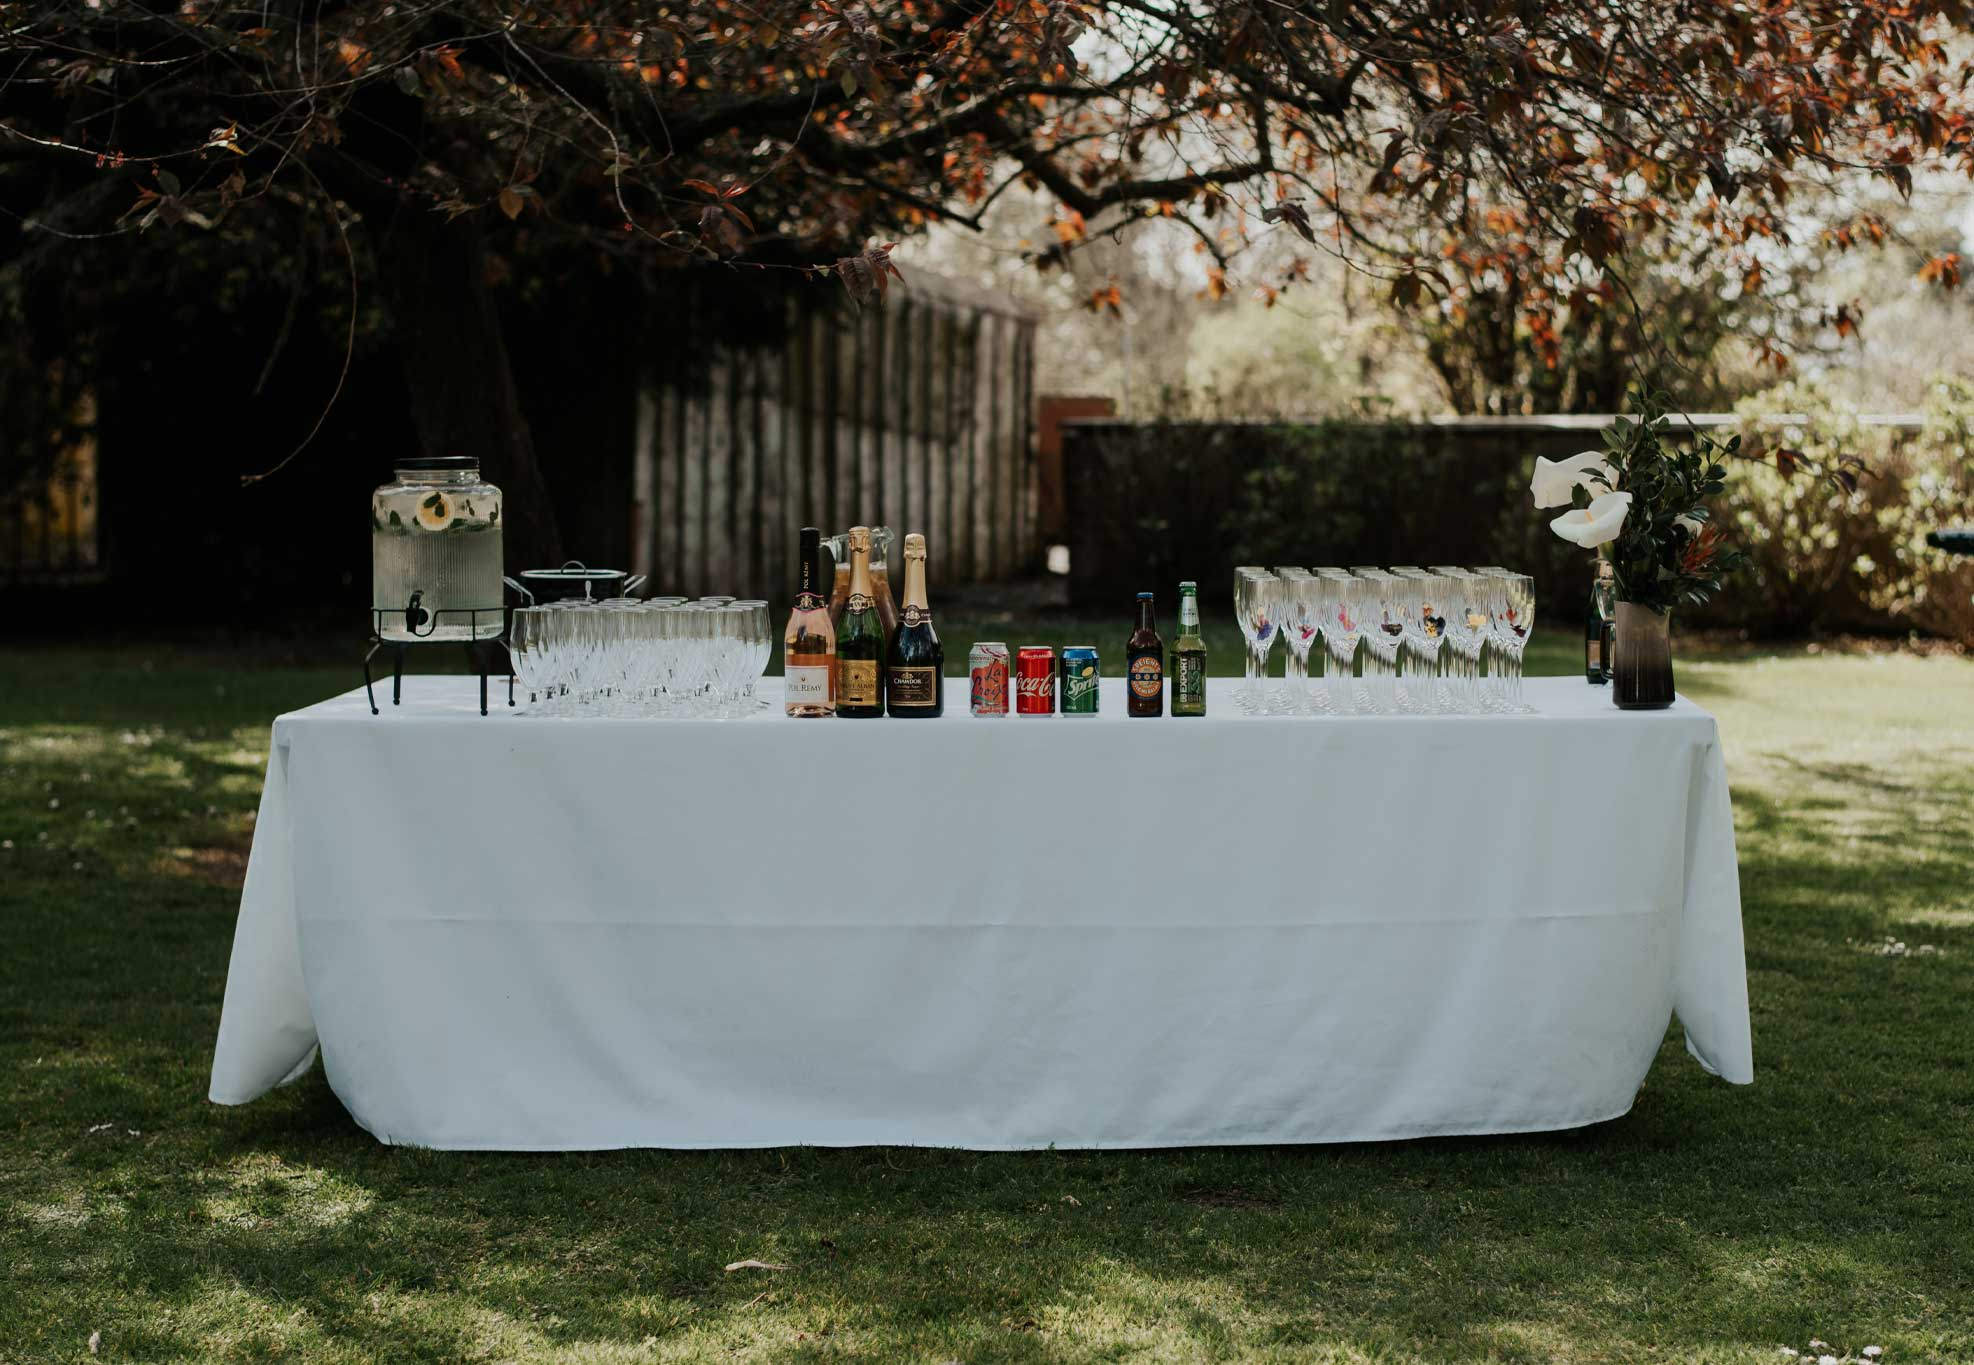 silk-estate-marquee-weddings-and-events-styling-and-hire-furniture-small-trestle-table-2